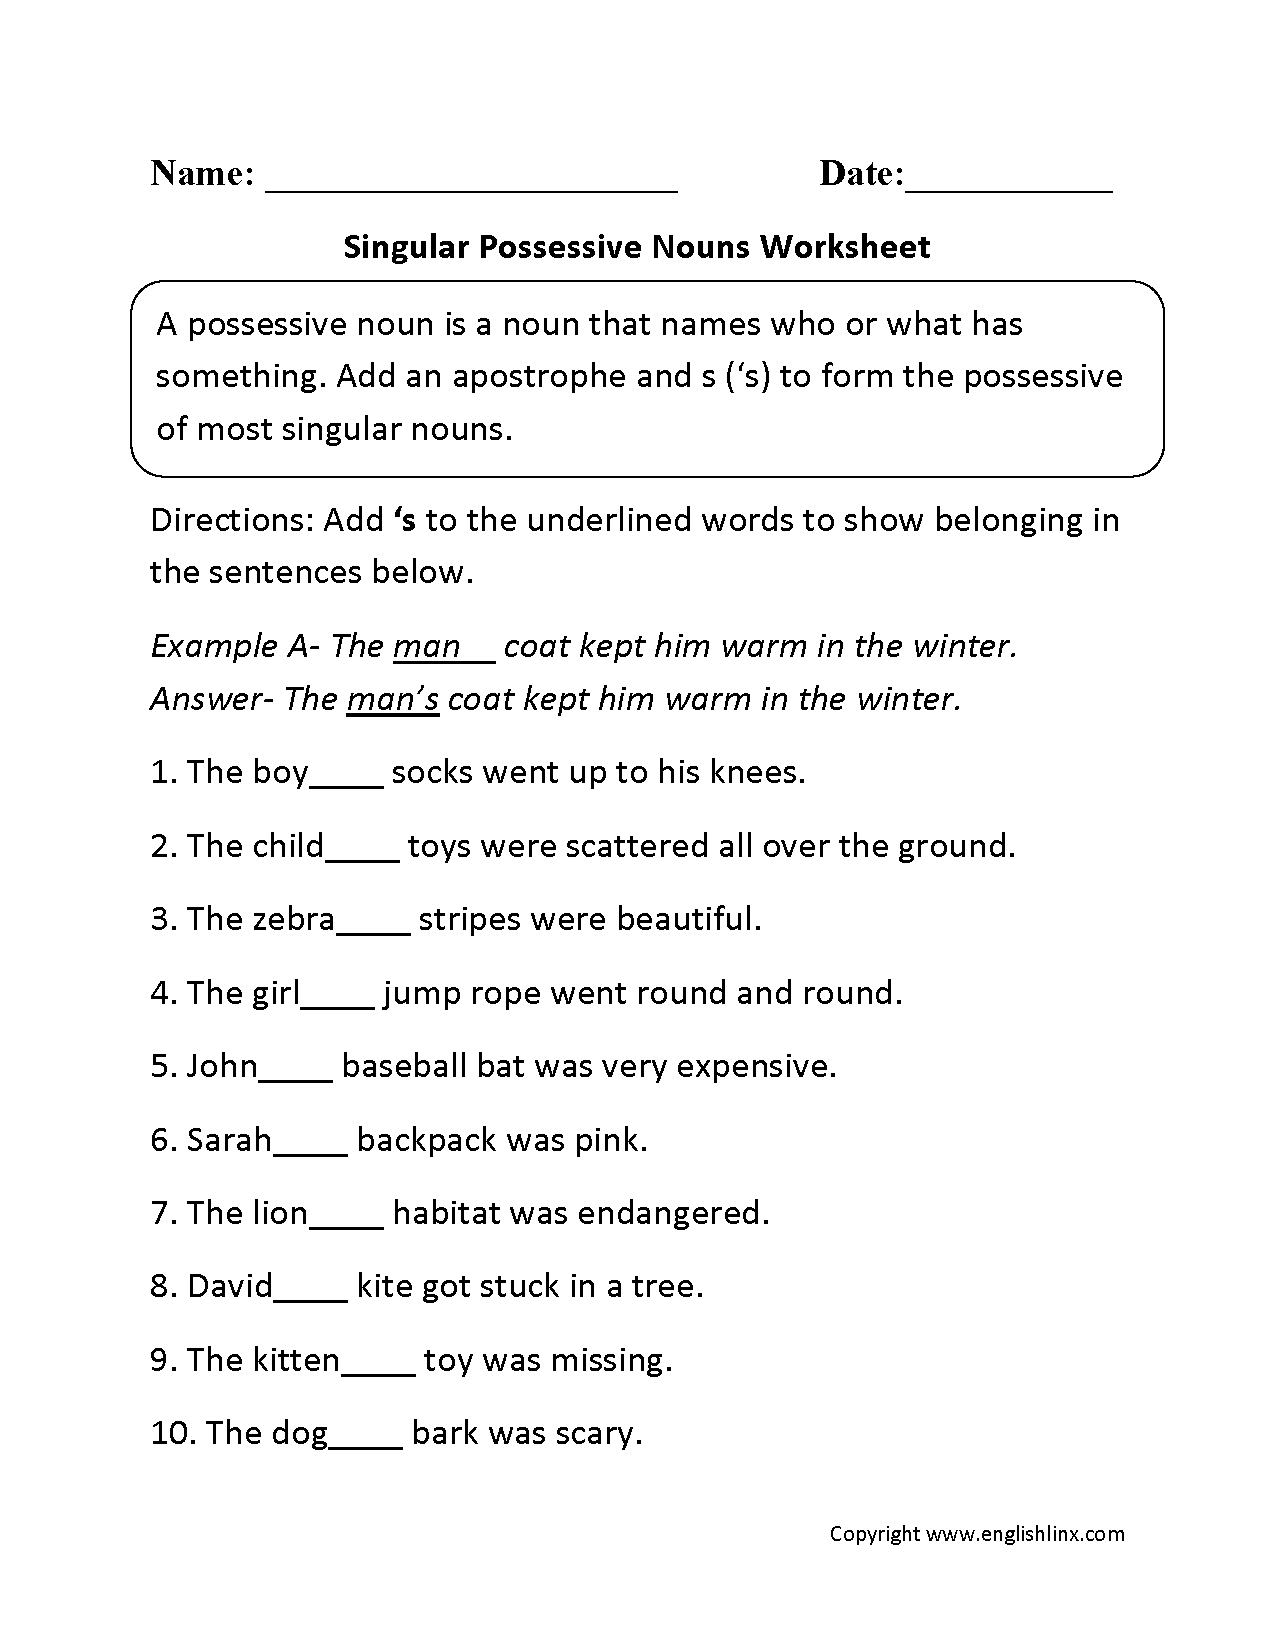 Aldiablosus  Marvelous Nouns Worksheets  Possessive Nouns Worksheets With Outstanding Possessive Nouns Worksheets With Nice Nutrient Cycle Worksheets Also Free Th Grade Language Arts Worksheets In Addition Time Card Worksheets And Time To The Nearest Minute Worksheet As Well As Elements And Principles Of Art Worksheets Additionally Answers For Worksheets From Englishlinxcom With Aldiablosus  Outstanding Nouns Worksheets  Possessive Nouns Worksheets With Nice Possessive Nouns Worksheets And Marvelous Nutrient Cycle Worksheets Also Free Th Grade Language Arts Worksheets In Addition Time Card Worksheets From Englishlinxcom